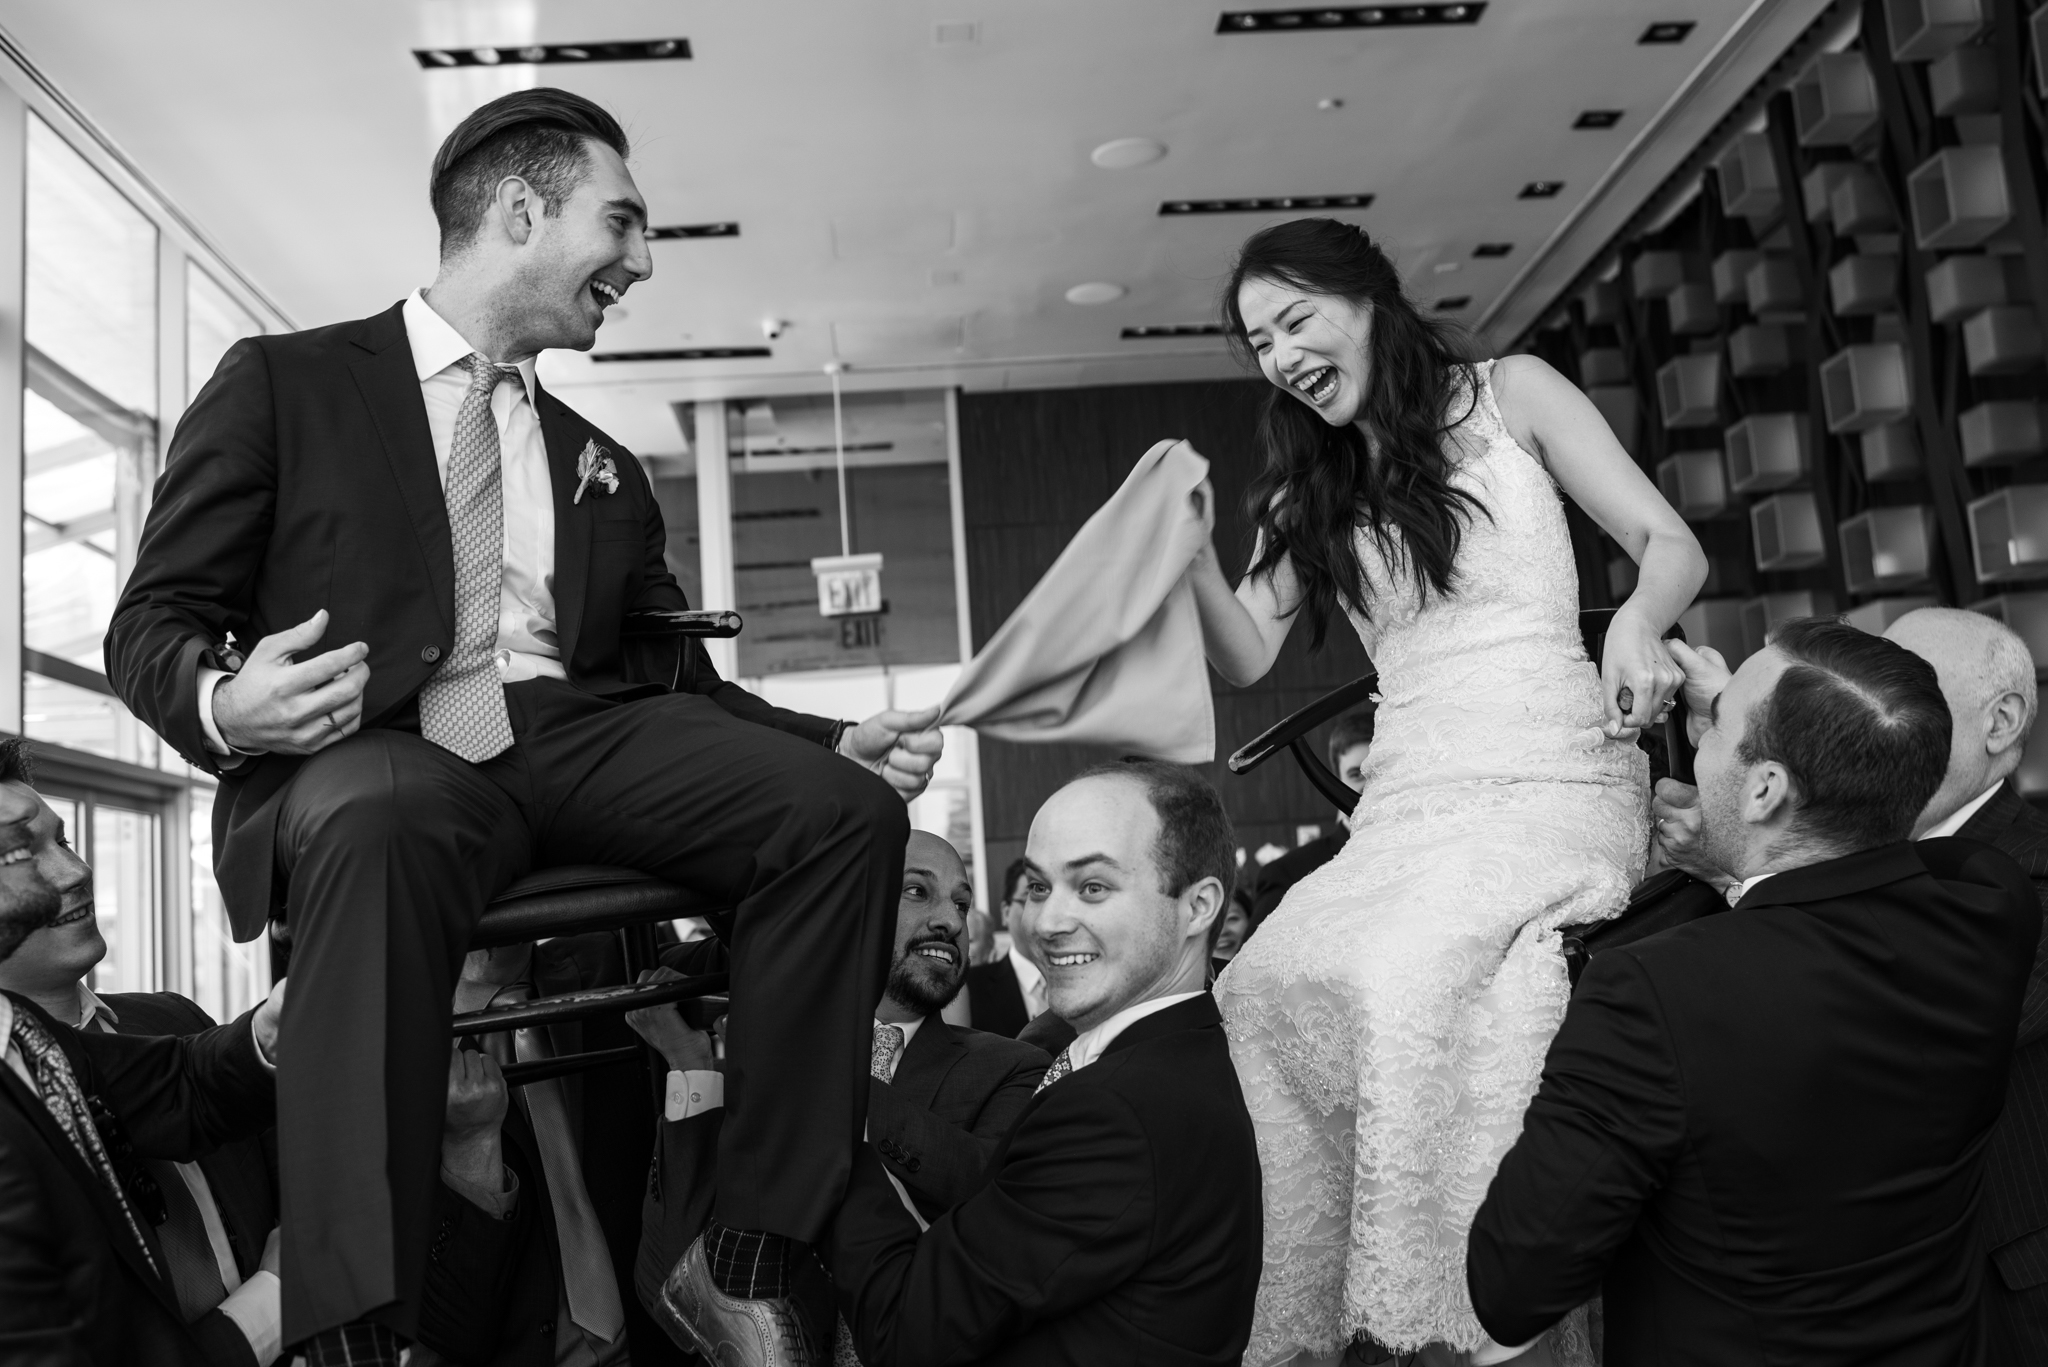 Saki & Zach's Wedding by Romina Hendlin-014.jpg